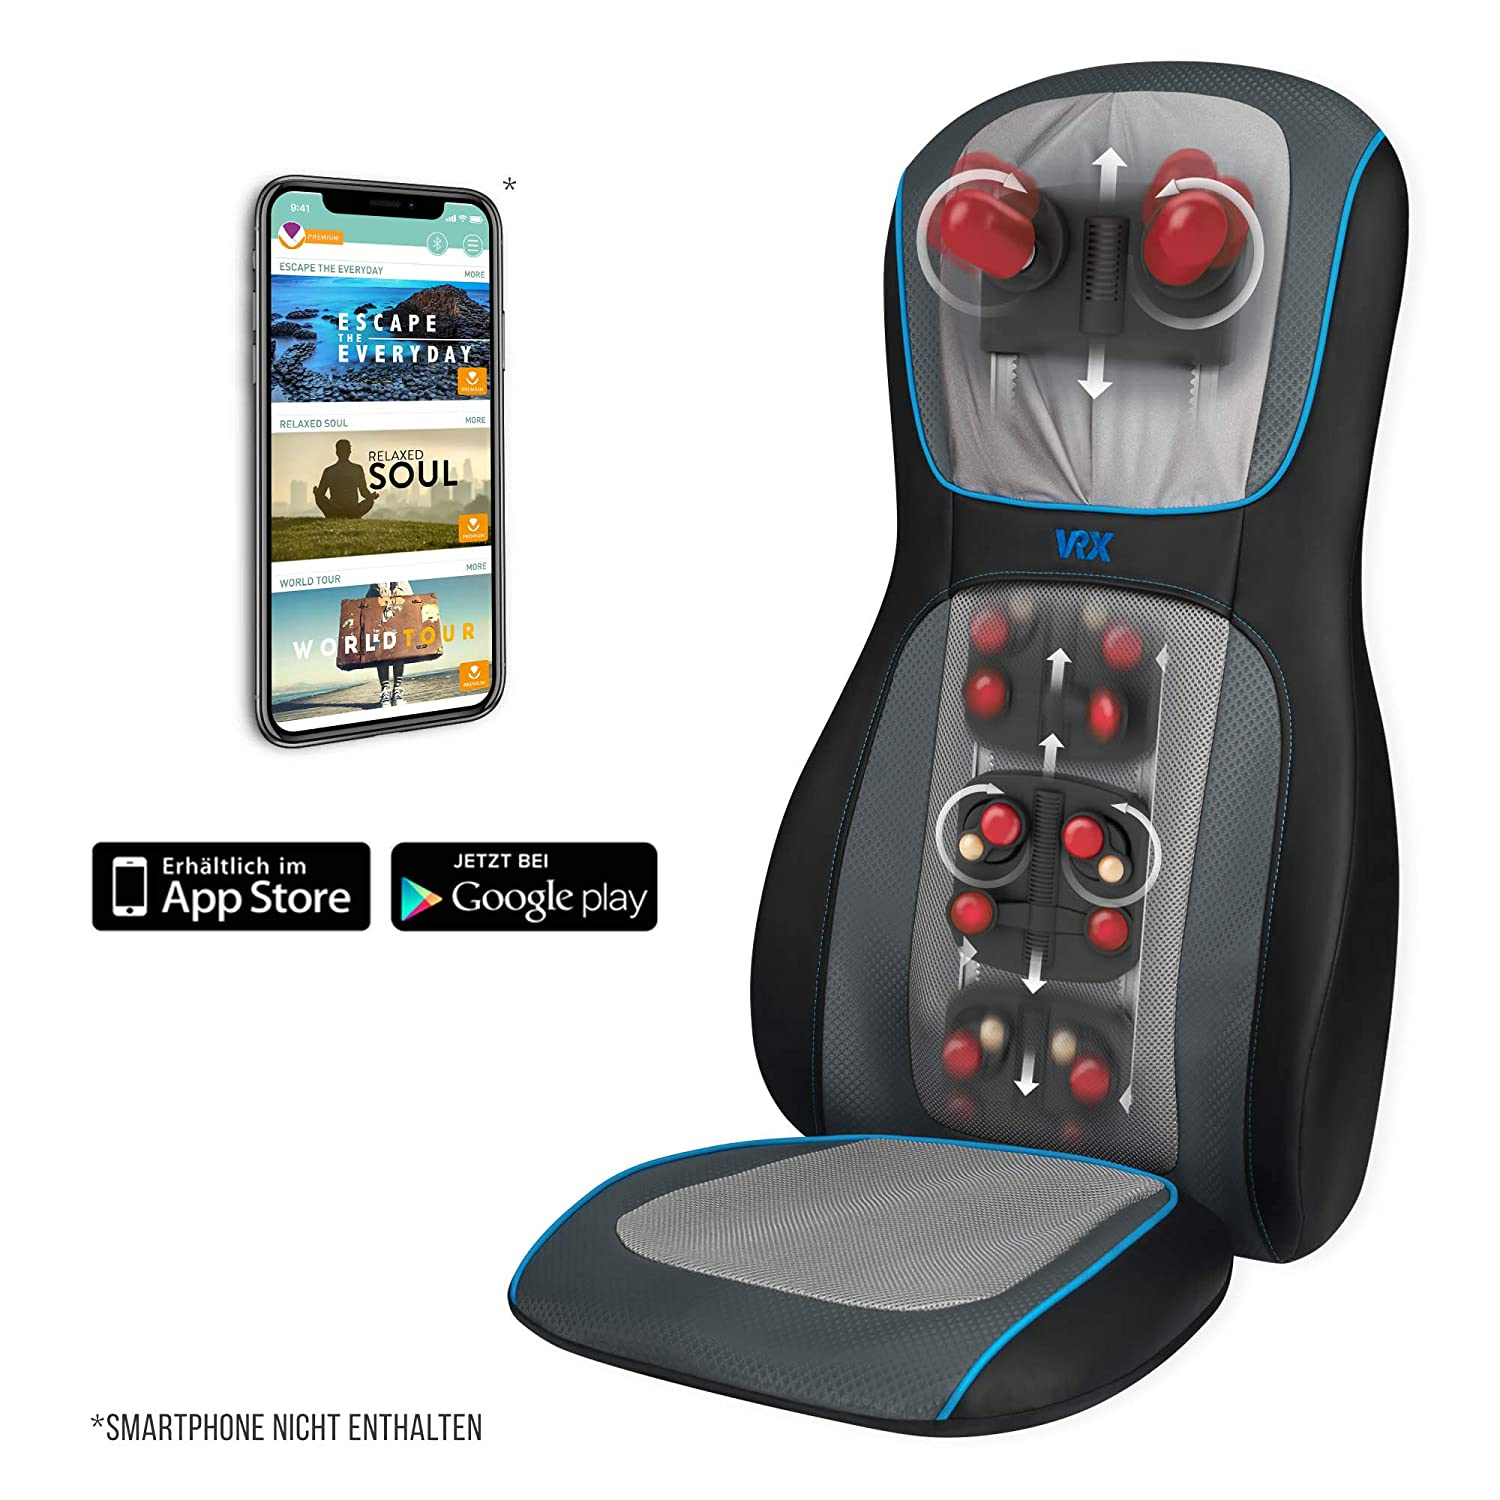 HoMedics MCS-1000HVR-EU Test - Luxus Massagematte